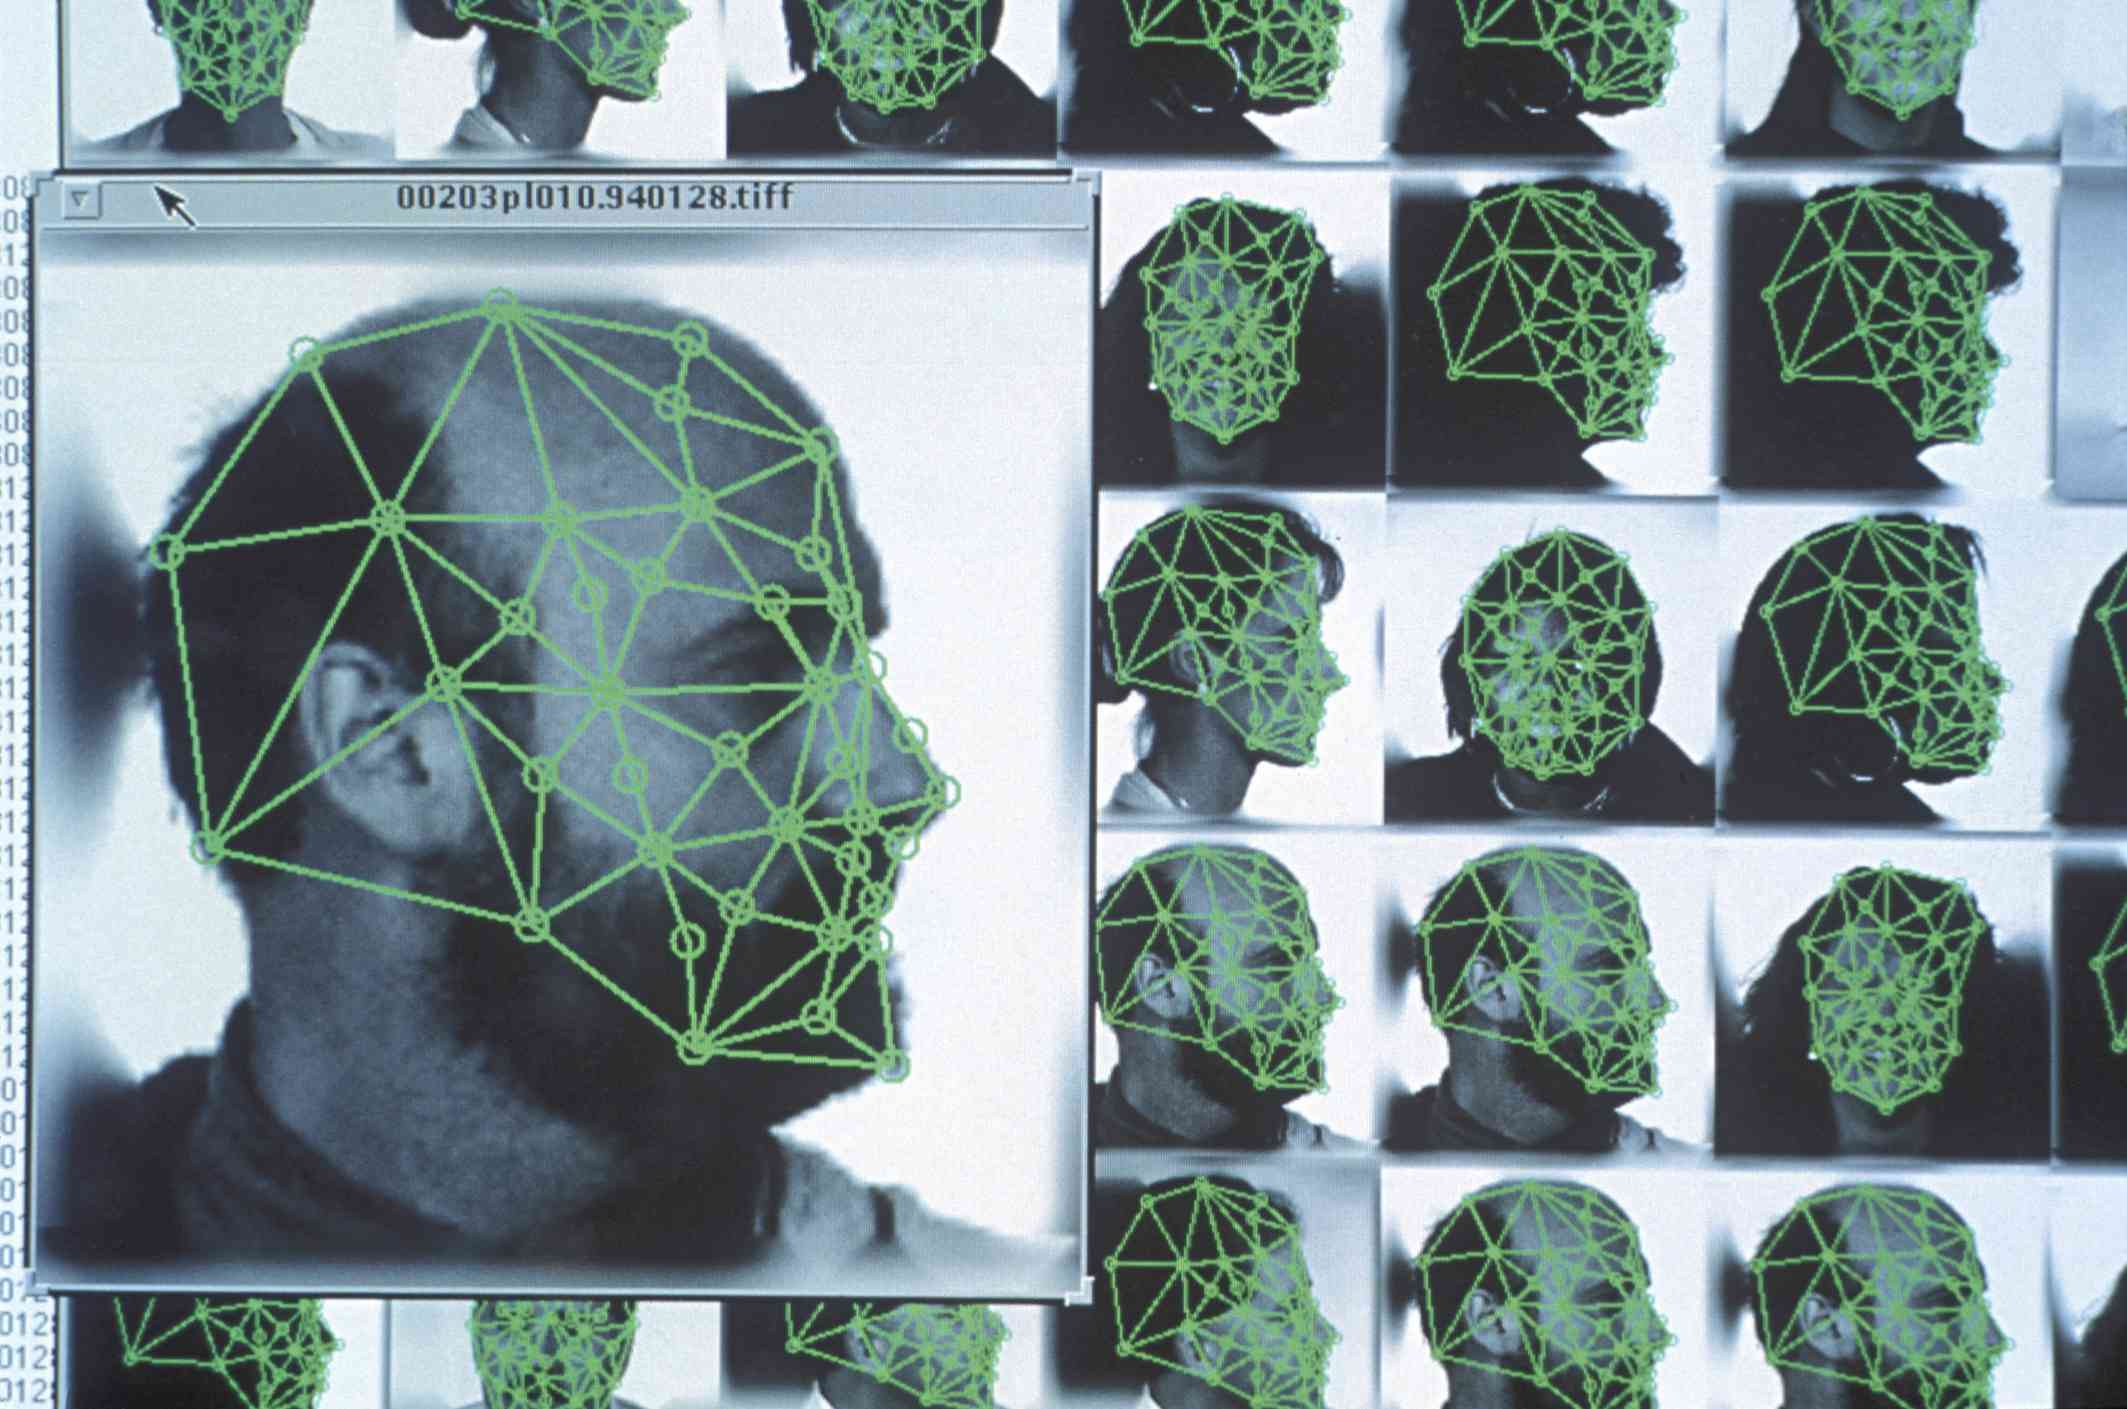 Criminologists use digital facial recognition to identify criminal suspects.